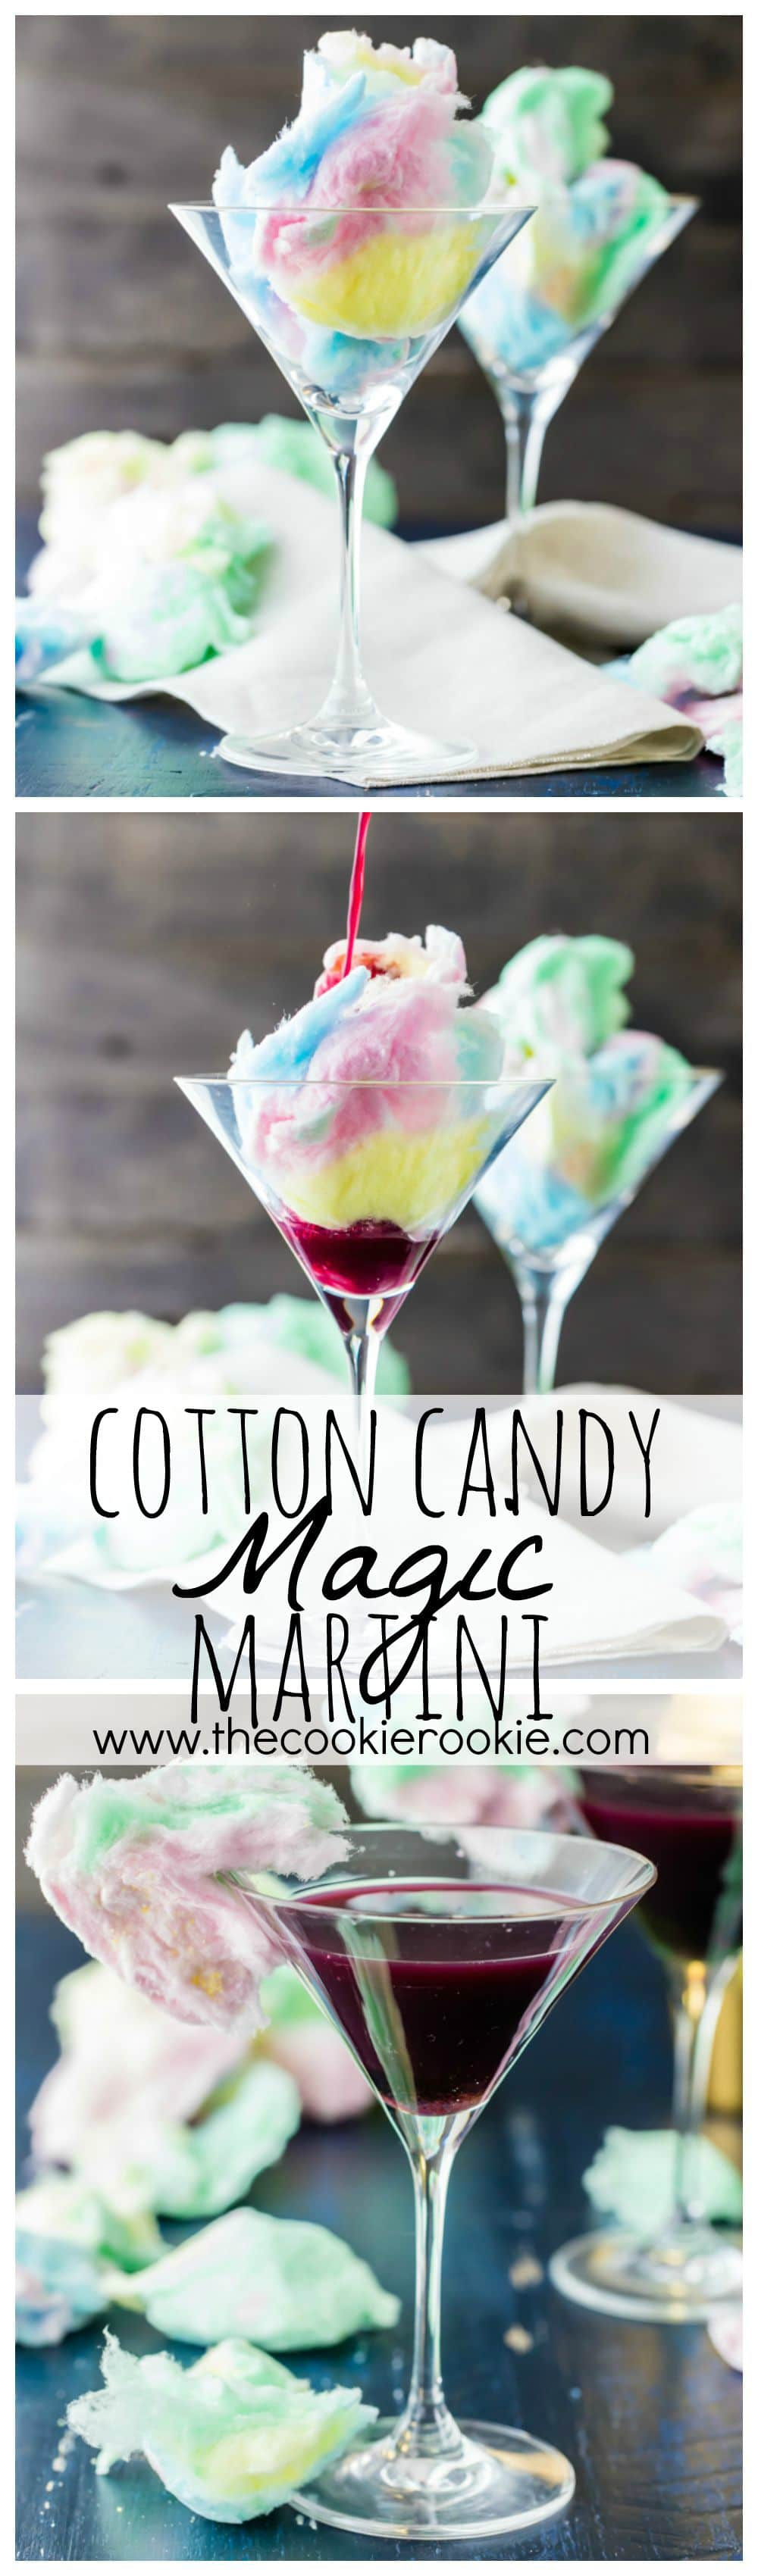 Magic Cotton Candy Martini (Plus Kid Friendly Version). There are SO FUN for Halloween or any time! The Cotton Candy dissolves in the juice!